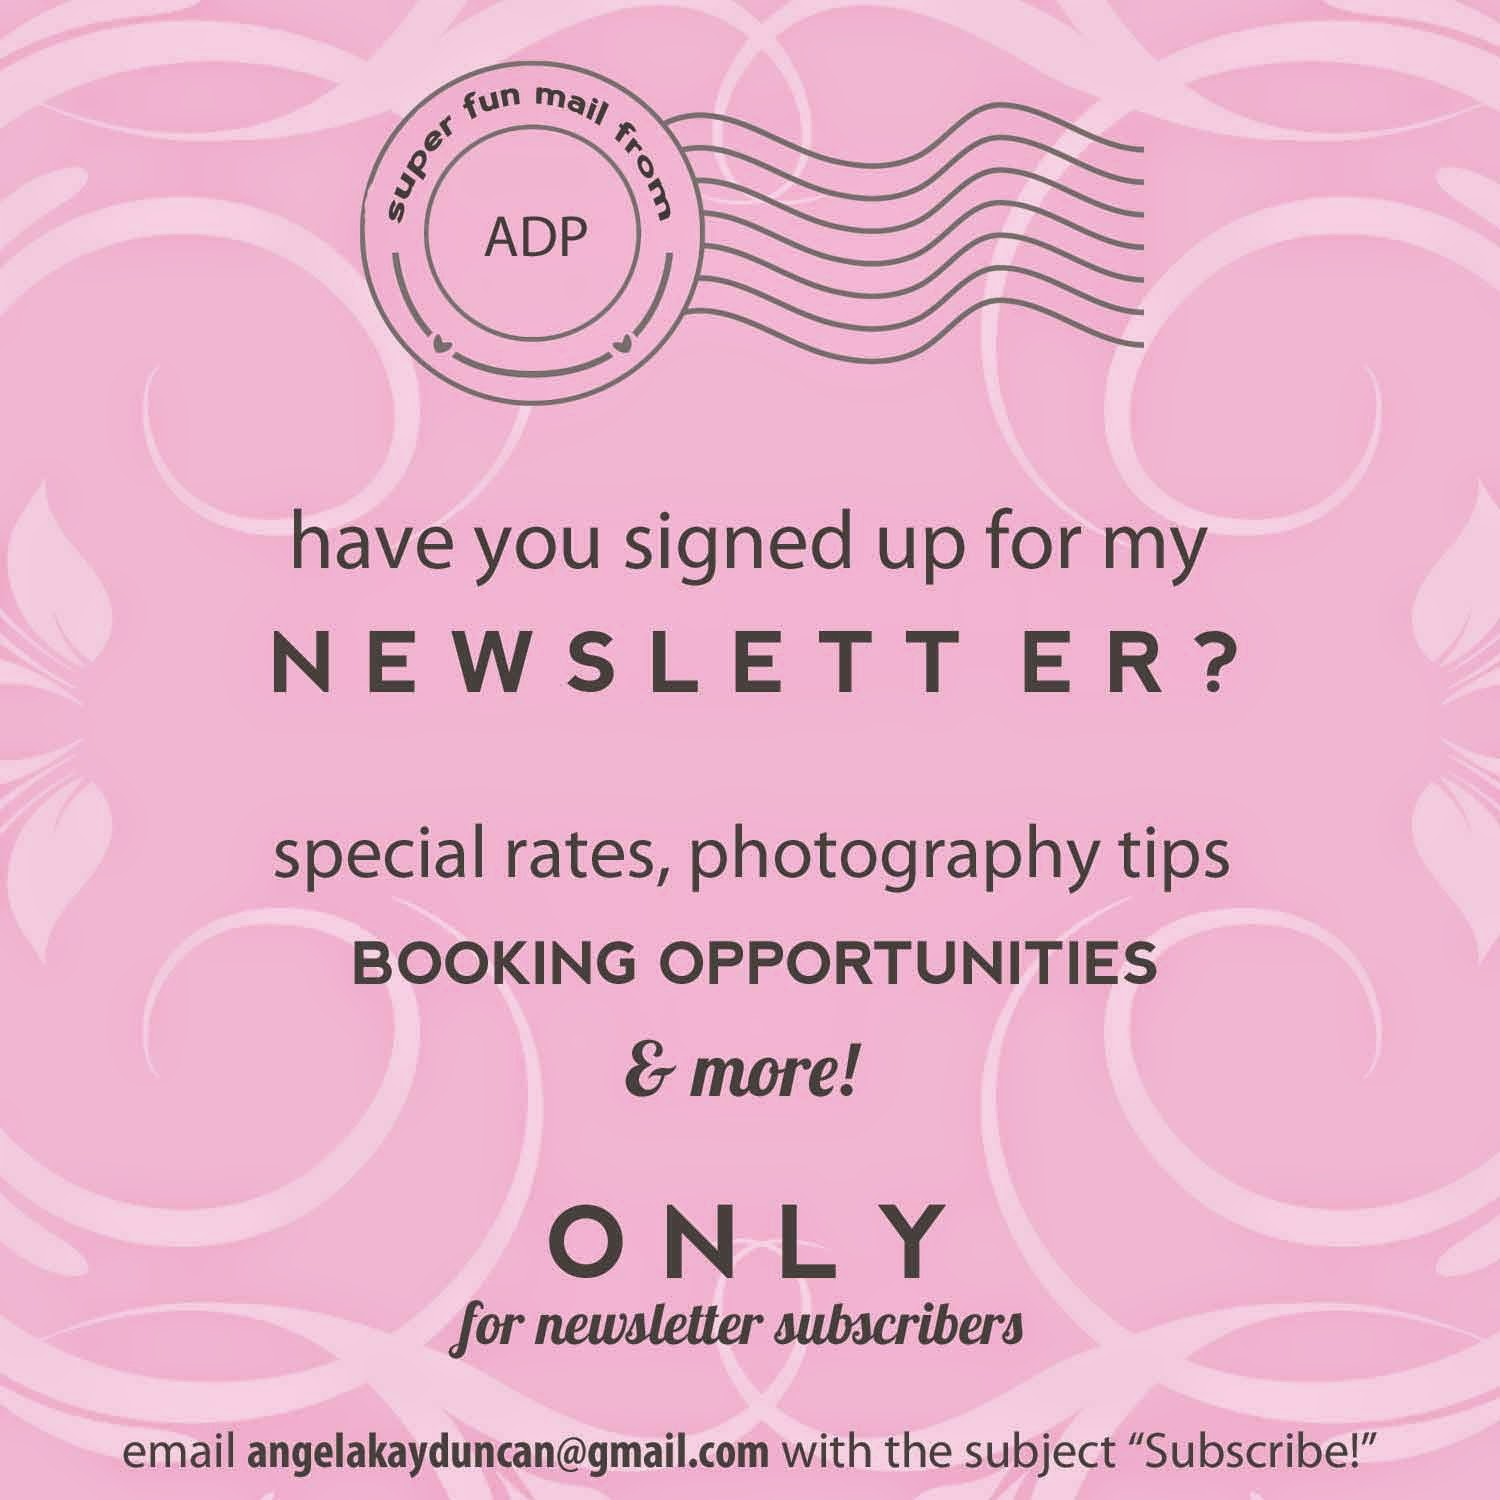 monthly newsletter photography tips ideas for photo gifts